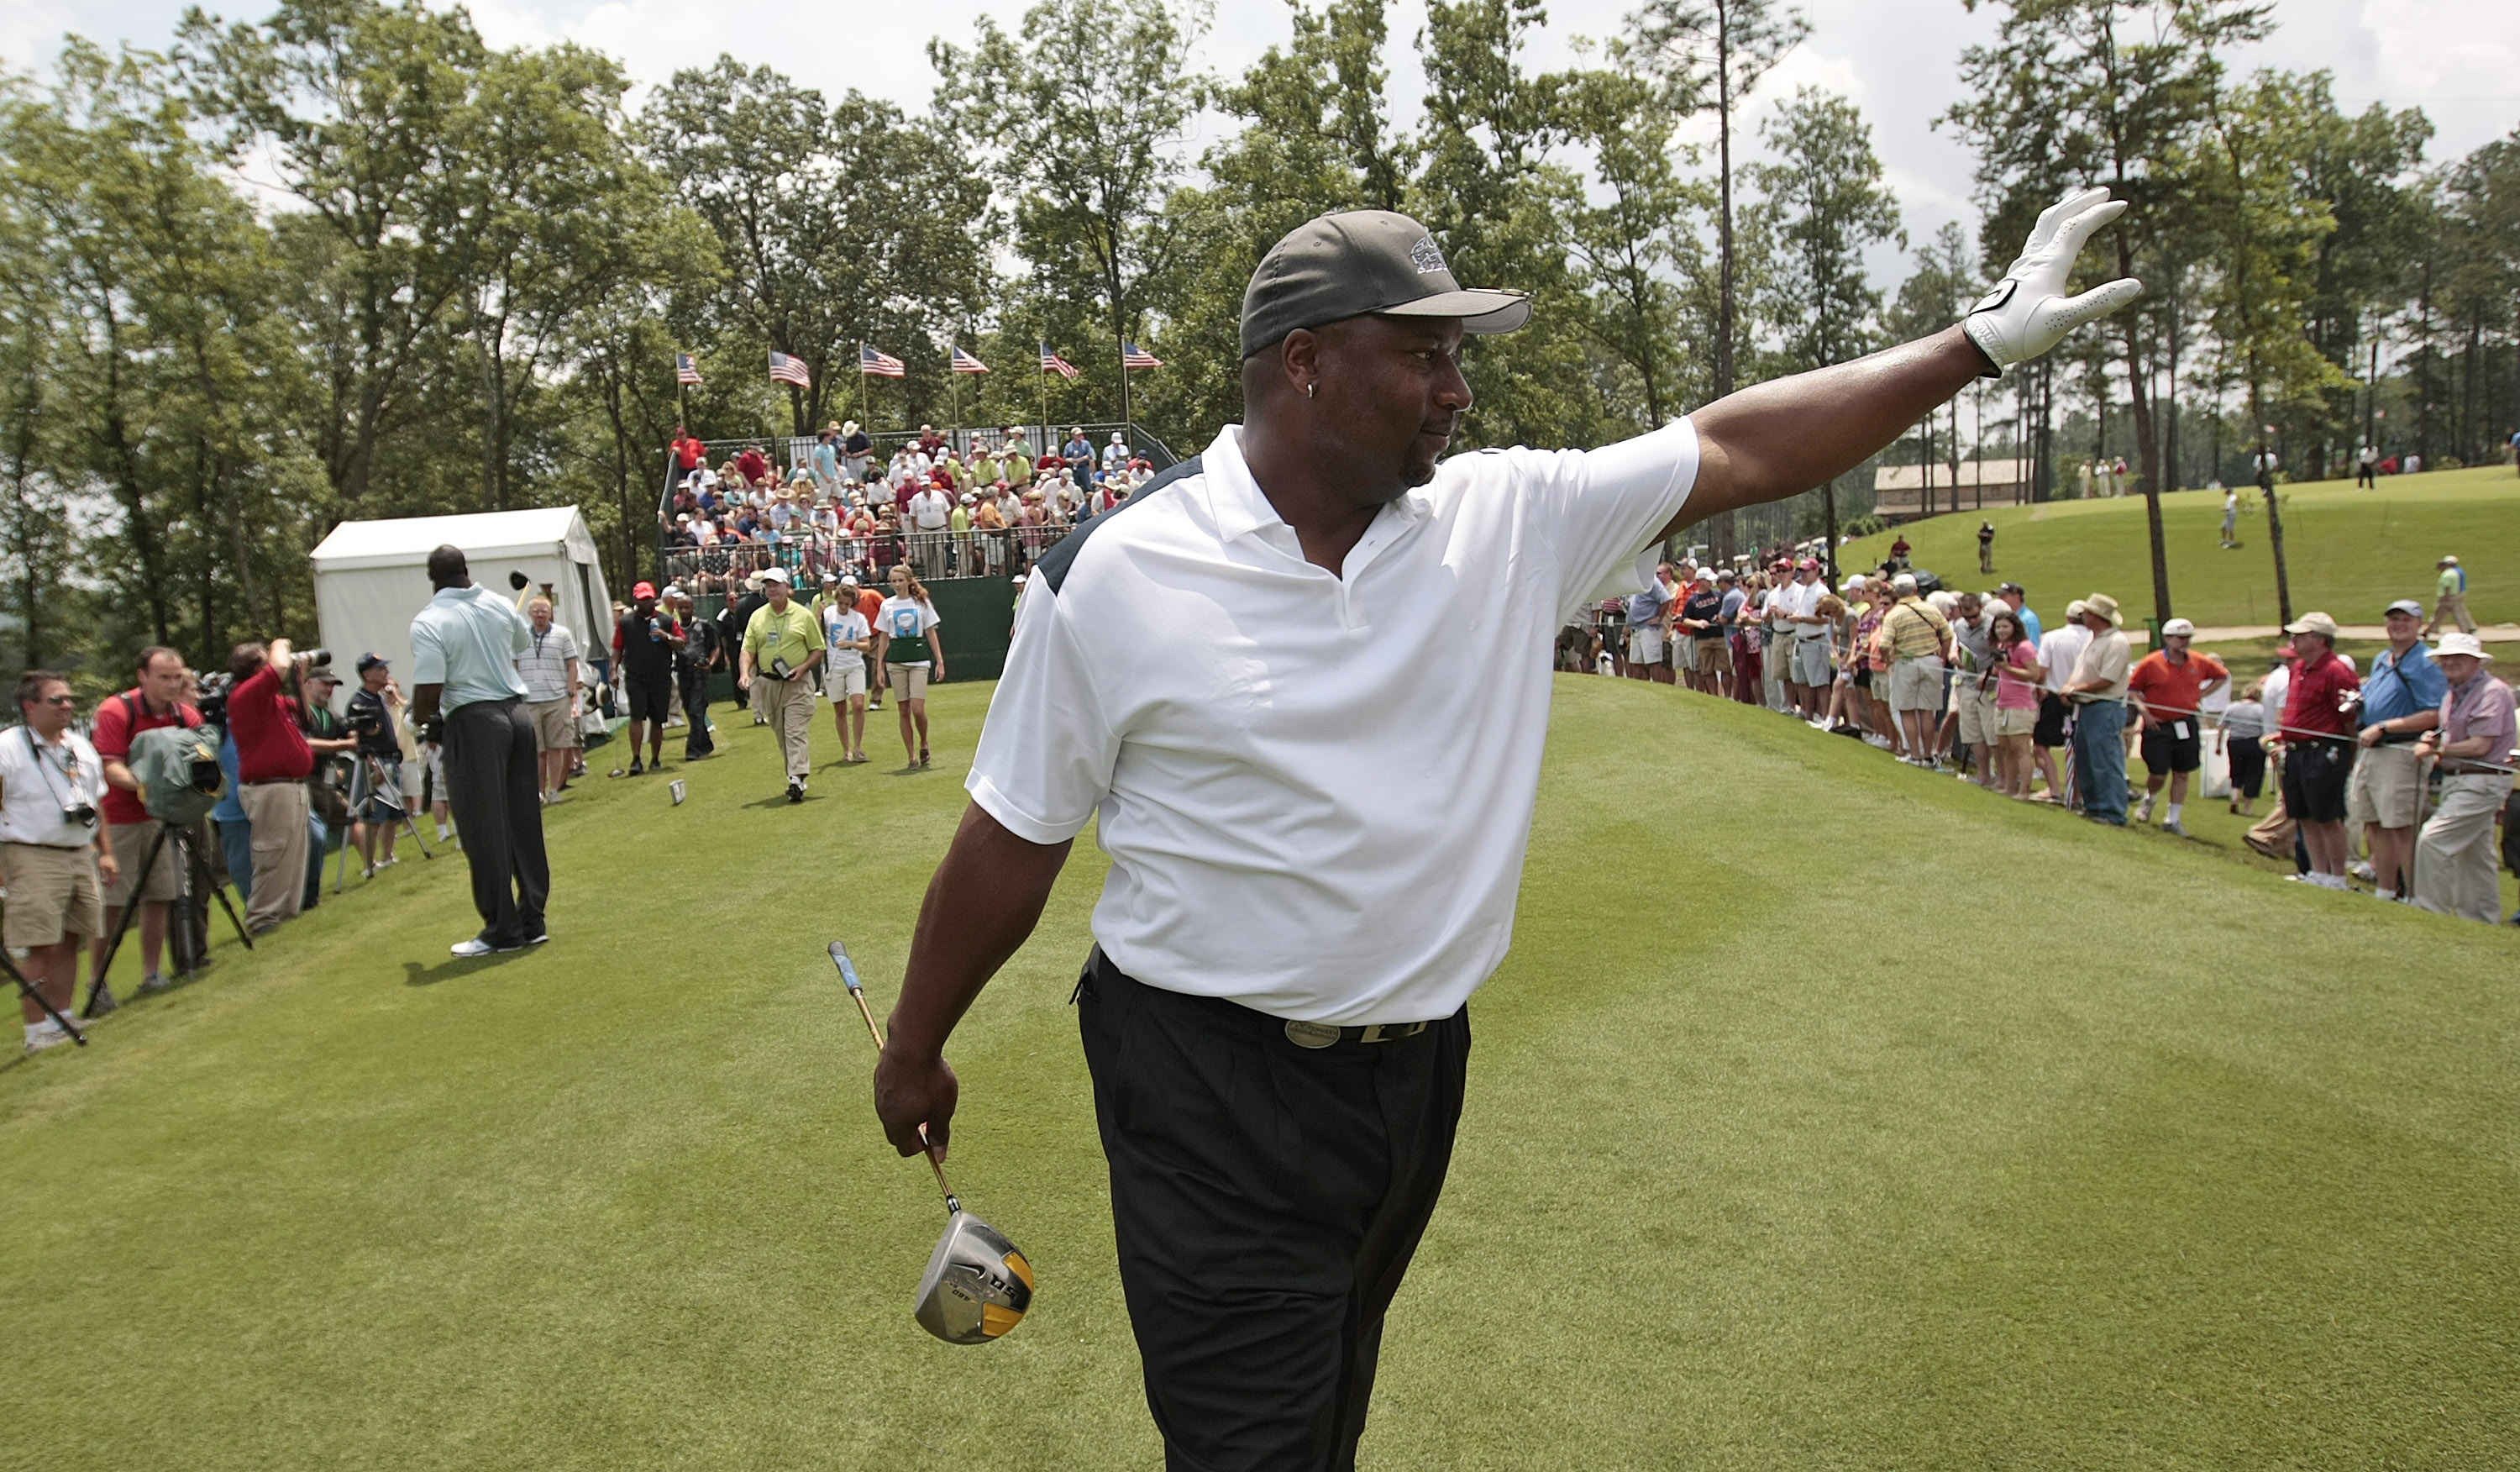 BIRMINGHAM, AL - MAY 14: Former NFL football star Bo Jackson waves to fans as he walks off the first tee during the Thursday Pro-AM of the Regions Charity Classic at the Robert Trent Jones Golf Trail at Ross Bridge on May 14, 2009  in Birmingham, Alabama.